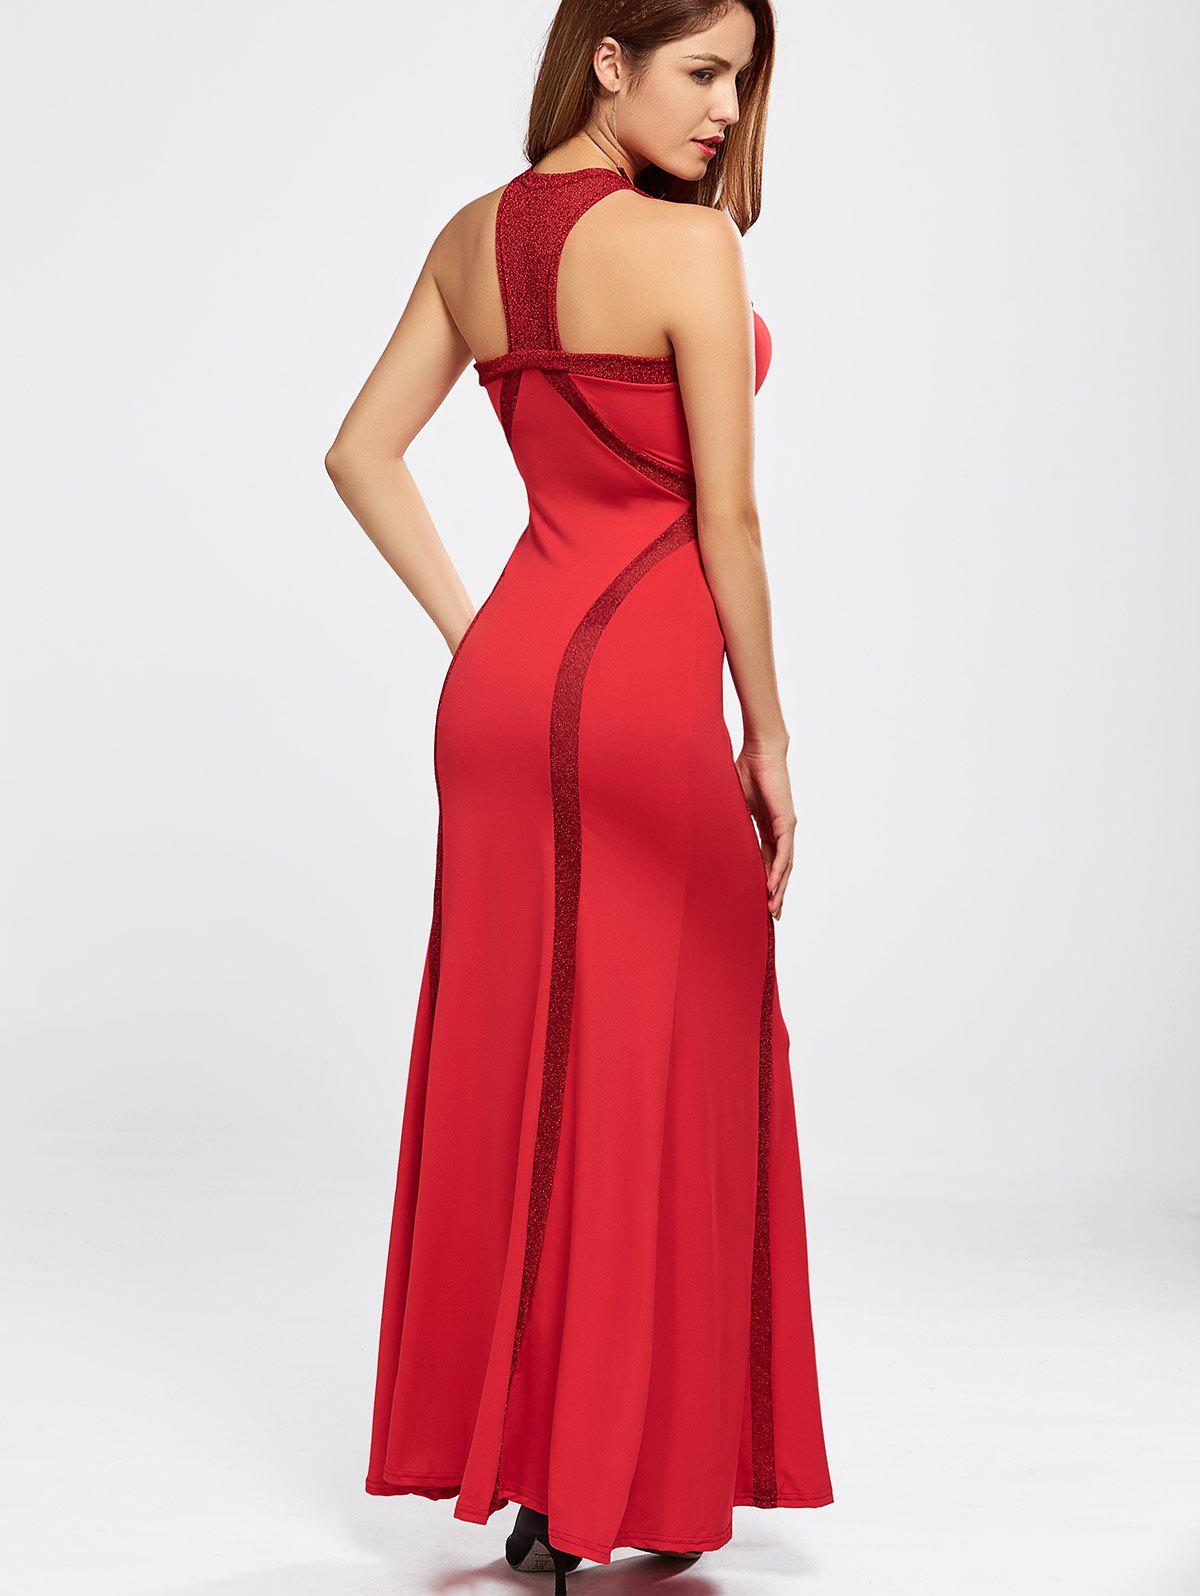 Maxi Fitted Racerback Prom Evening Dress - RED S